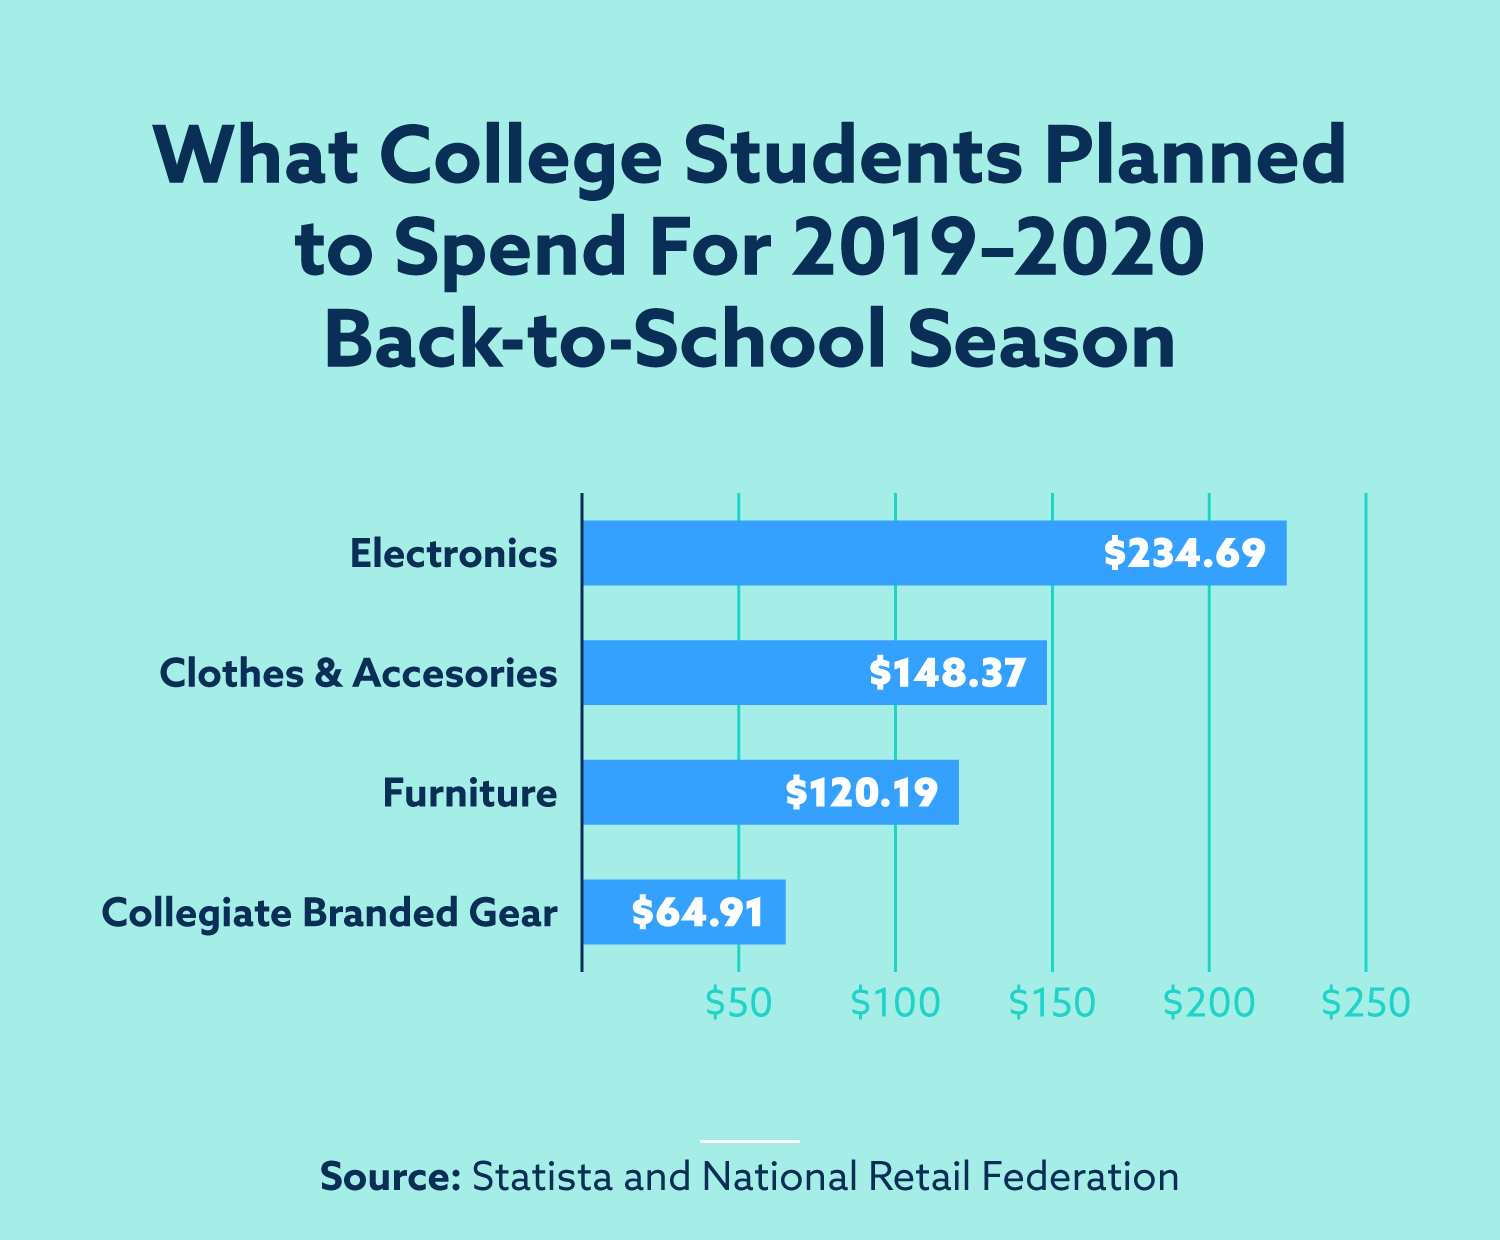 college students planned to spend $235 on electronics, $148 on clothes and accessories, $120 on furniture and $65 on collegiate branded gear for the 2019–2020 back-to-school season.